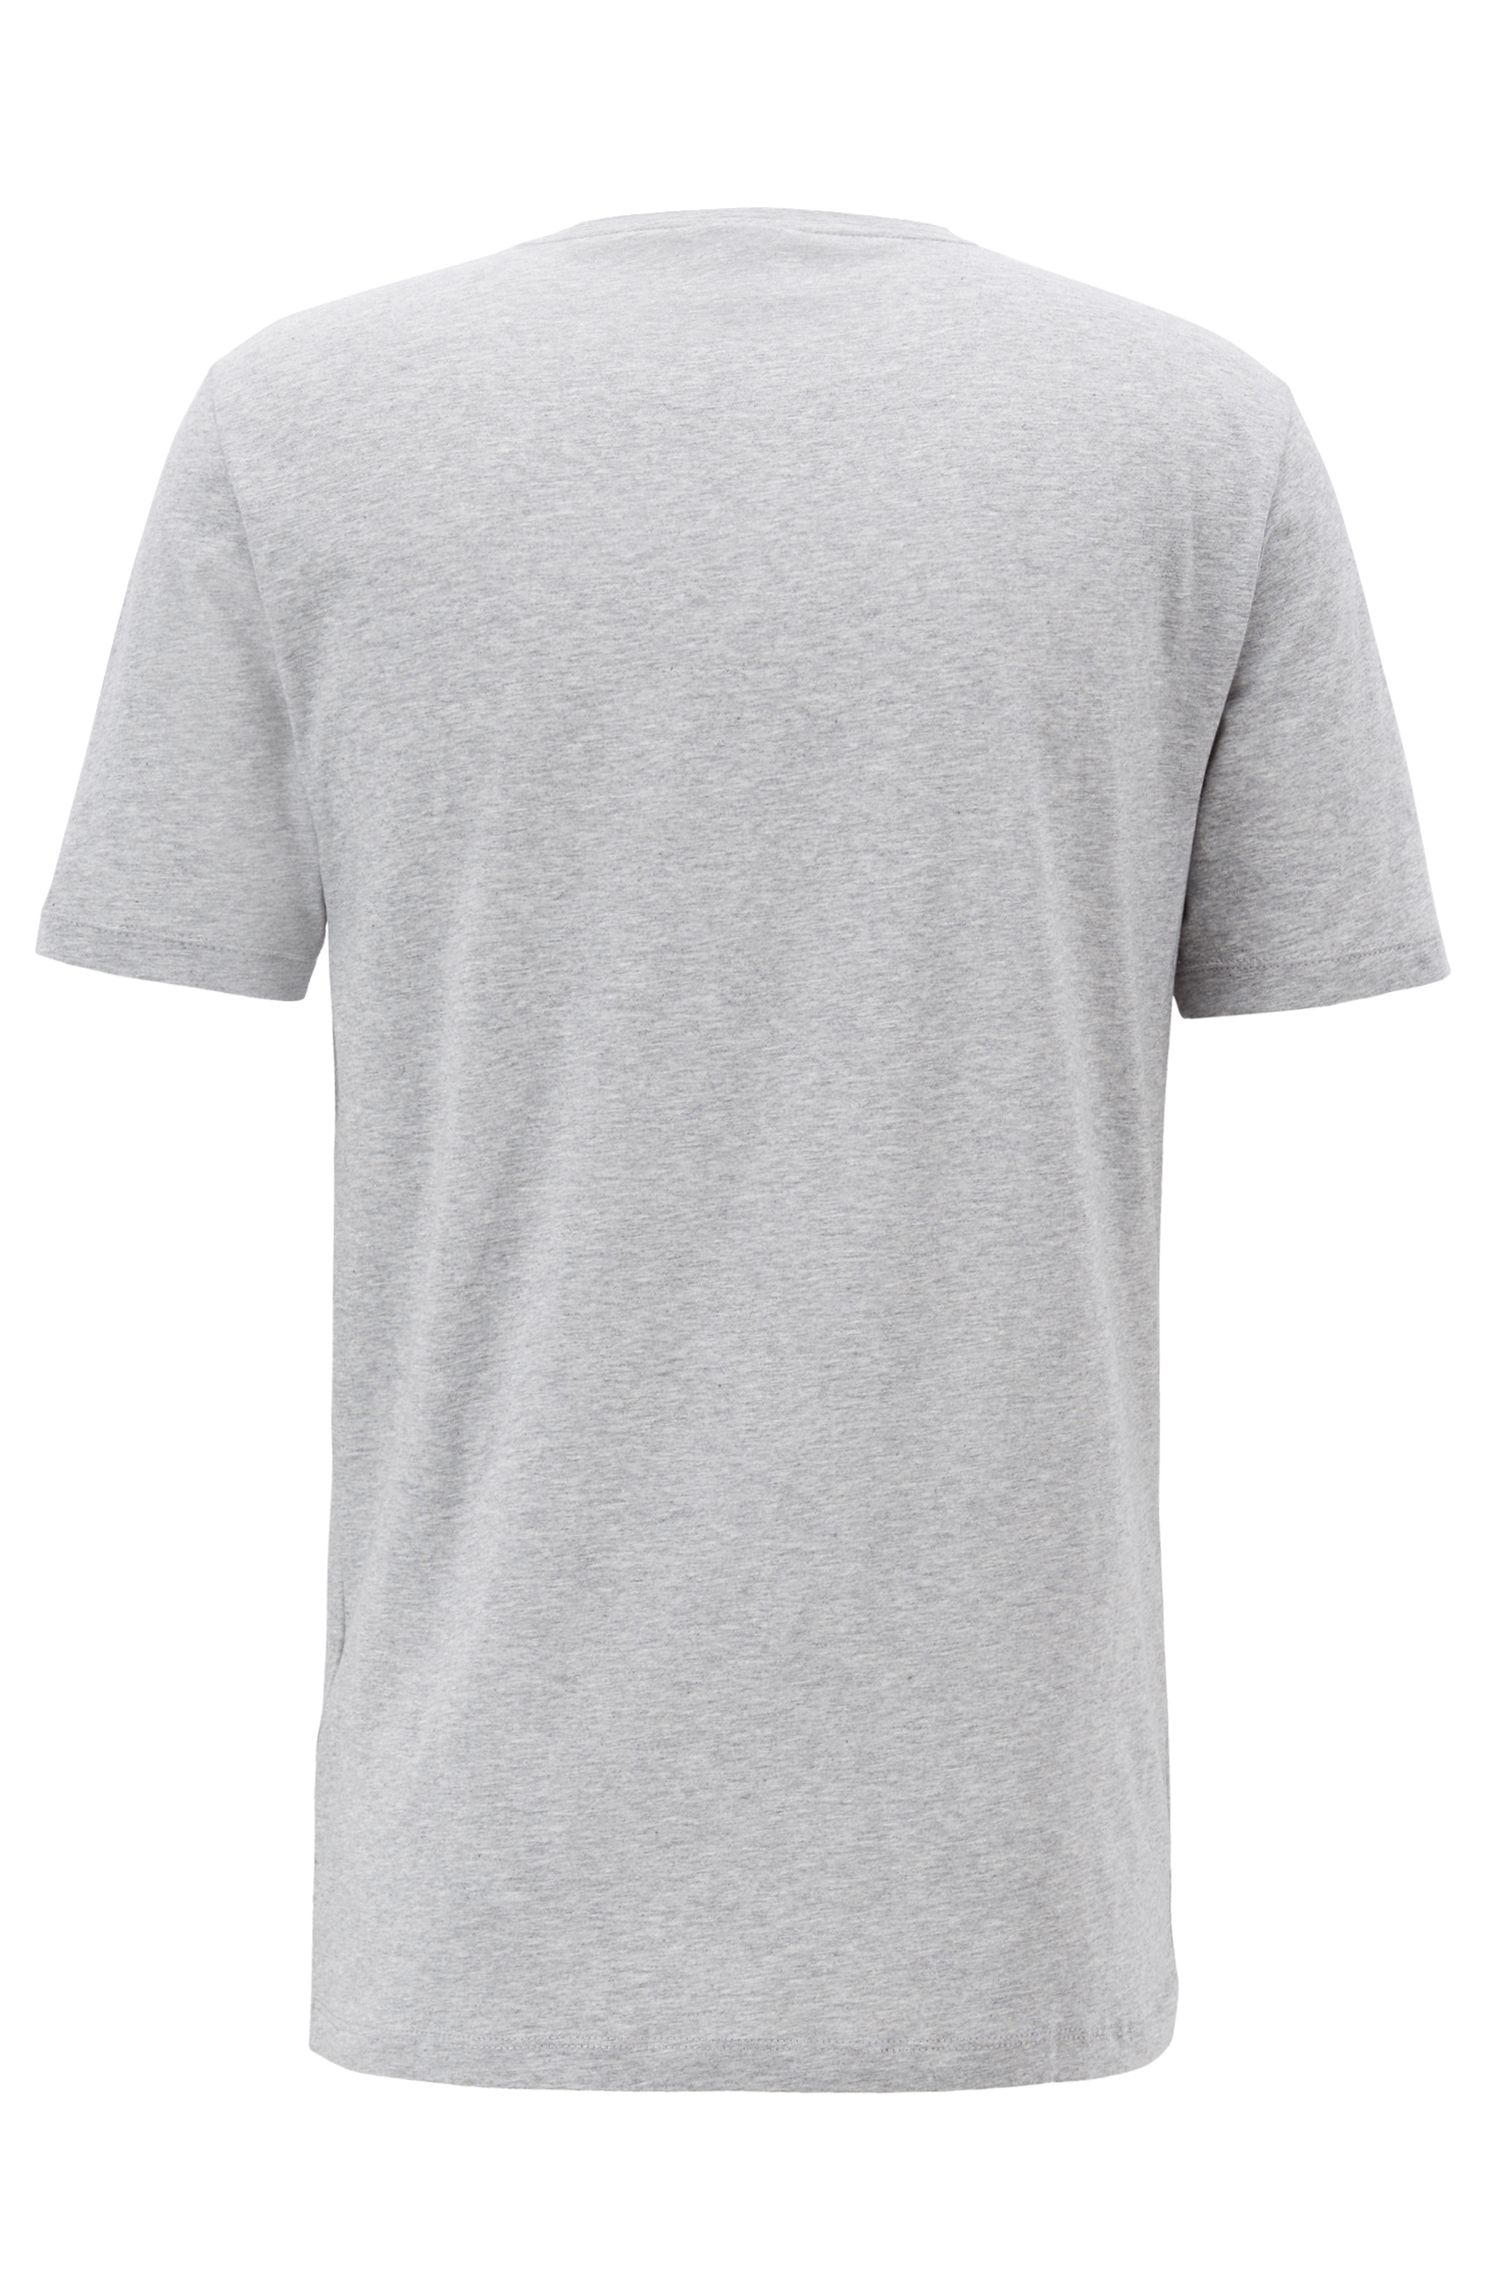 Crew-neck T-shirt in cotton with large logo print, Light Grey